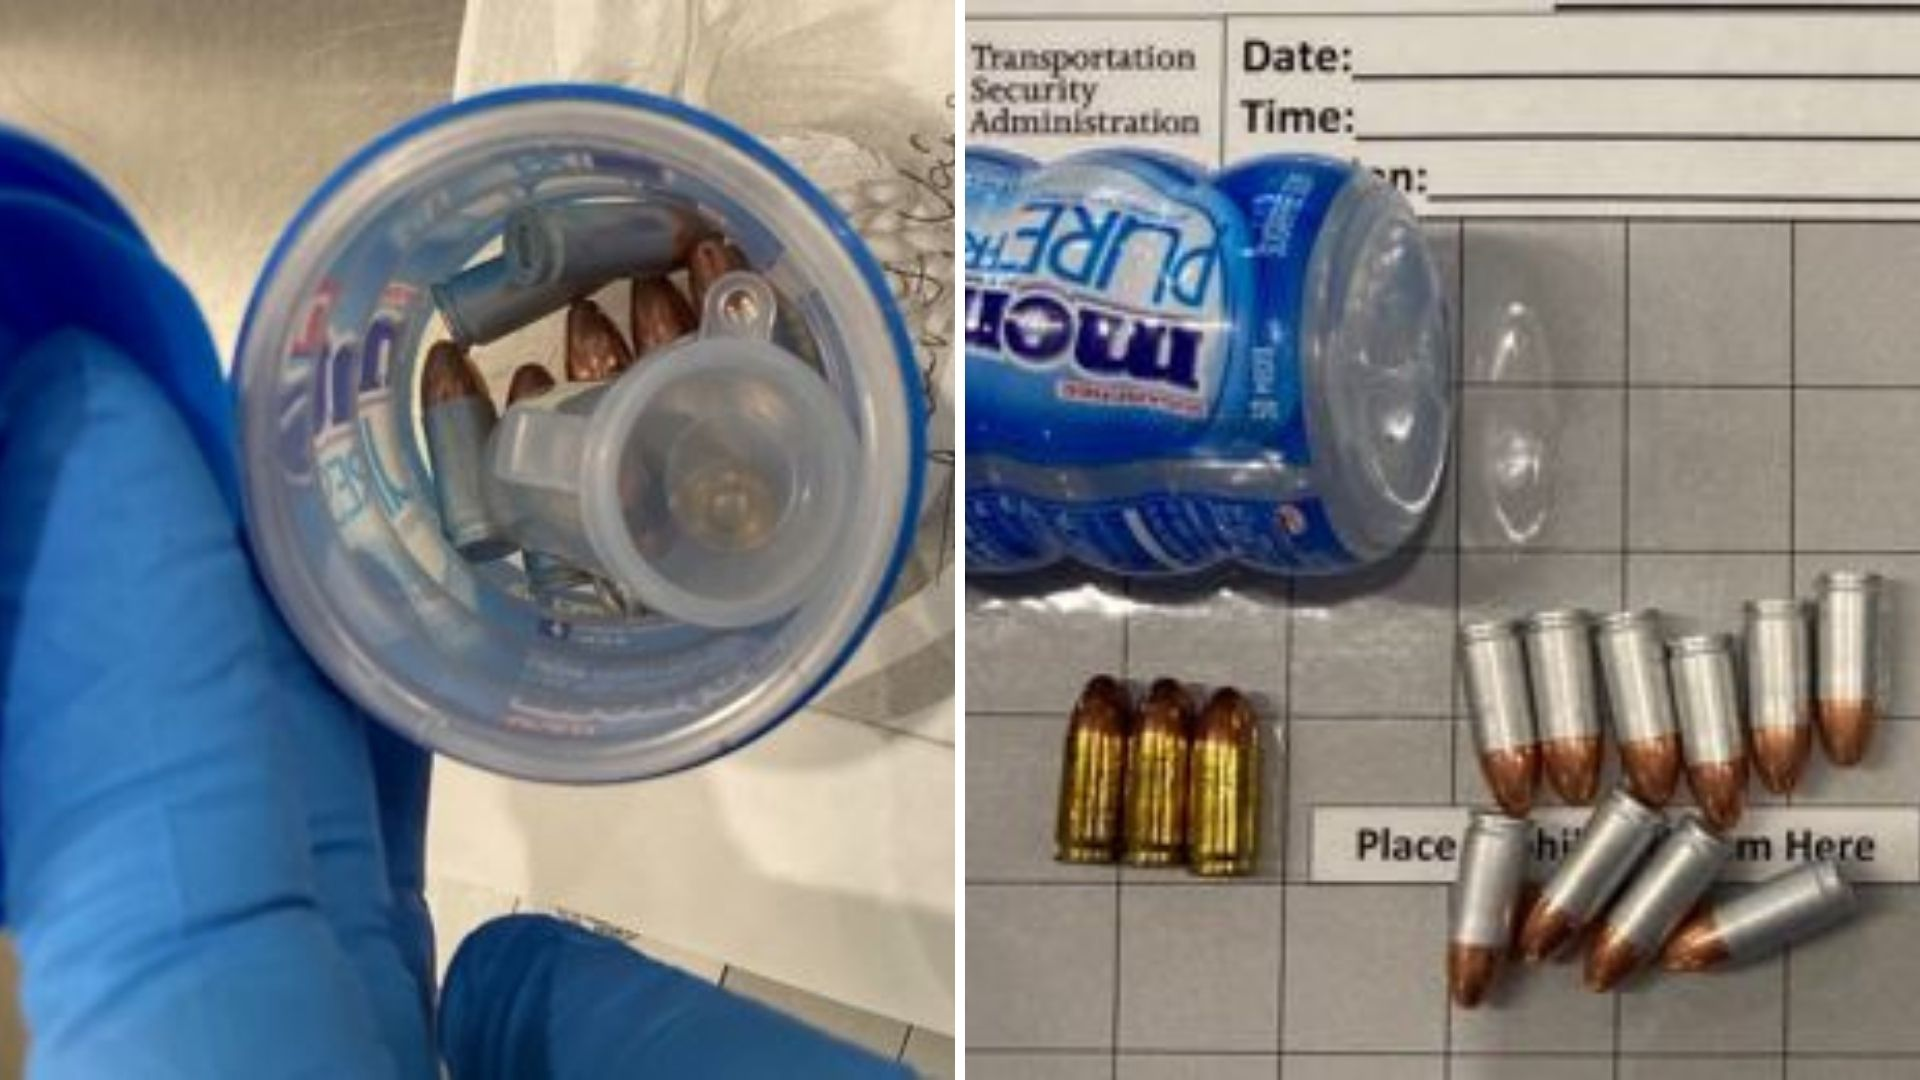 TSA finds bullets in gum container at LaGuardia